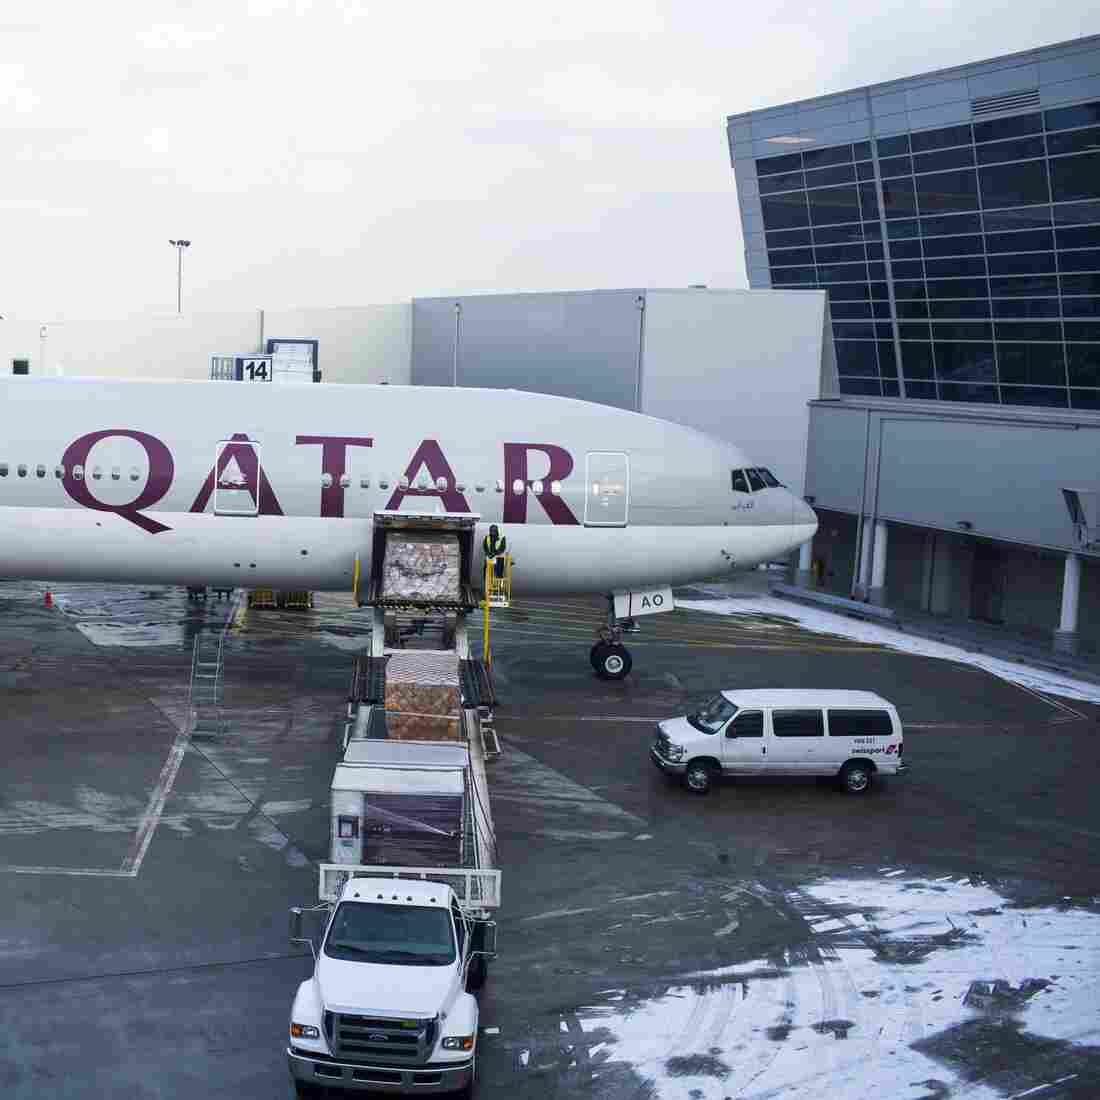 """A Qatar Airways plane loads cargo on Feb. 3, 2013, at  John F. Kennedy International Airport in New York. The big three U.S. airlines — Delta, United and American — say Persian Gulf carriers like Qatar Airways, Emirates Airlines and Etihad are """"dumping"""" seats in the U.S."""